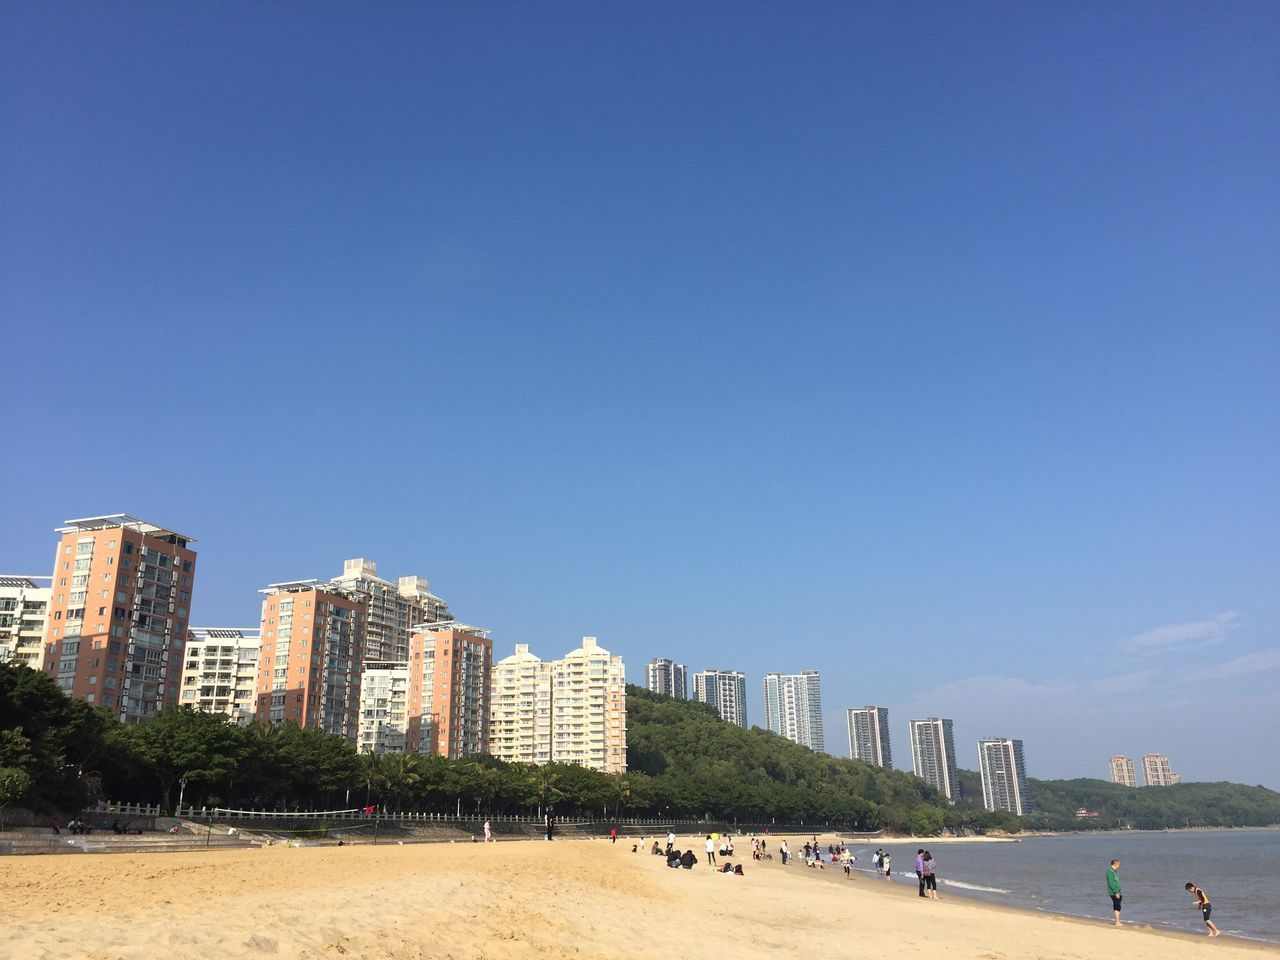 Building Exterior Architecture Built Structure Clear Sky City Blue Copy Space BEIJING北京CHINA中国BEAUTY Zhuhai Sea Water Beach Outdoors Day Sunlight Skyscraper Sand Cityscape Tree Vacations Nature No People